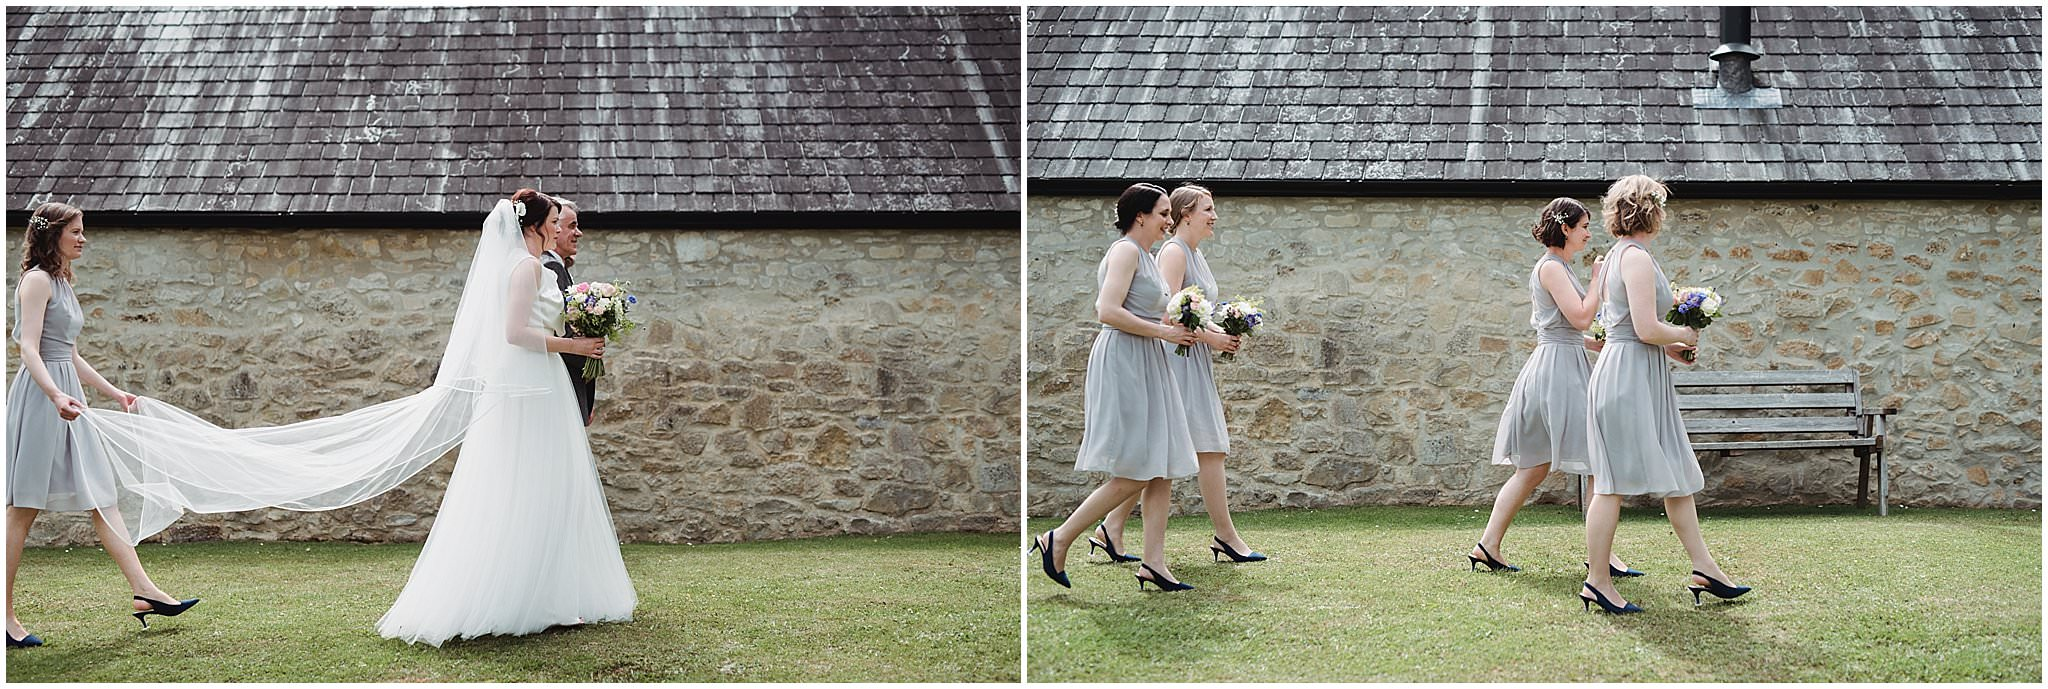 fay & tim wedding at ashley wood farm_0458